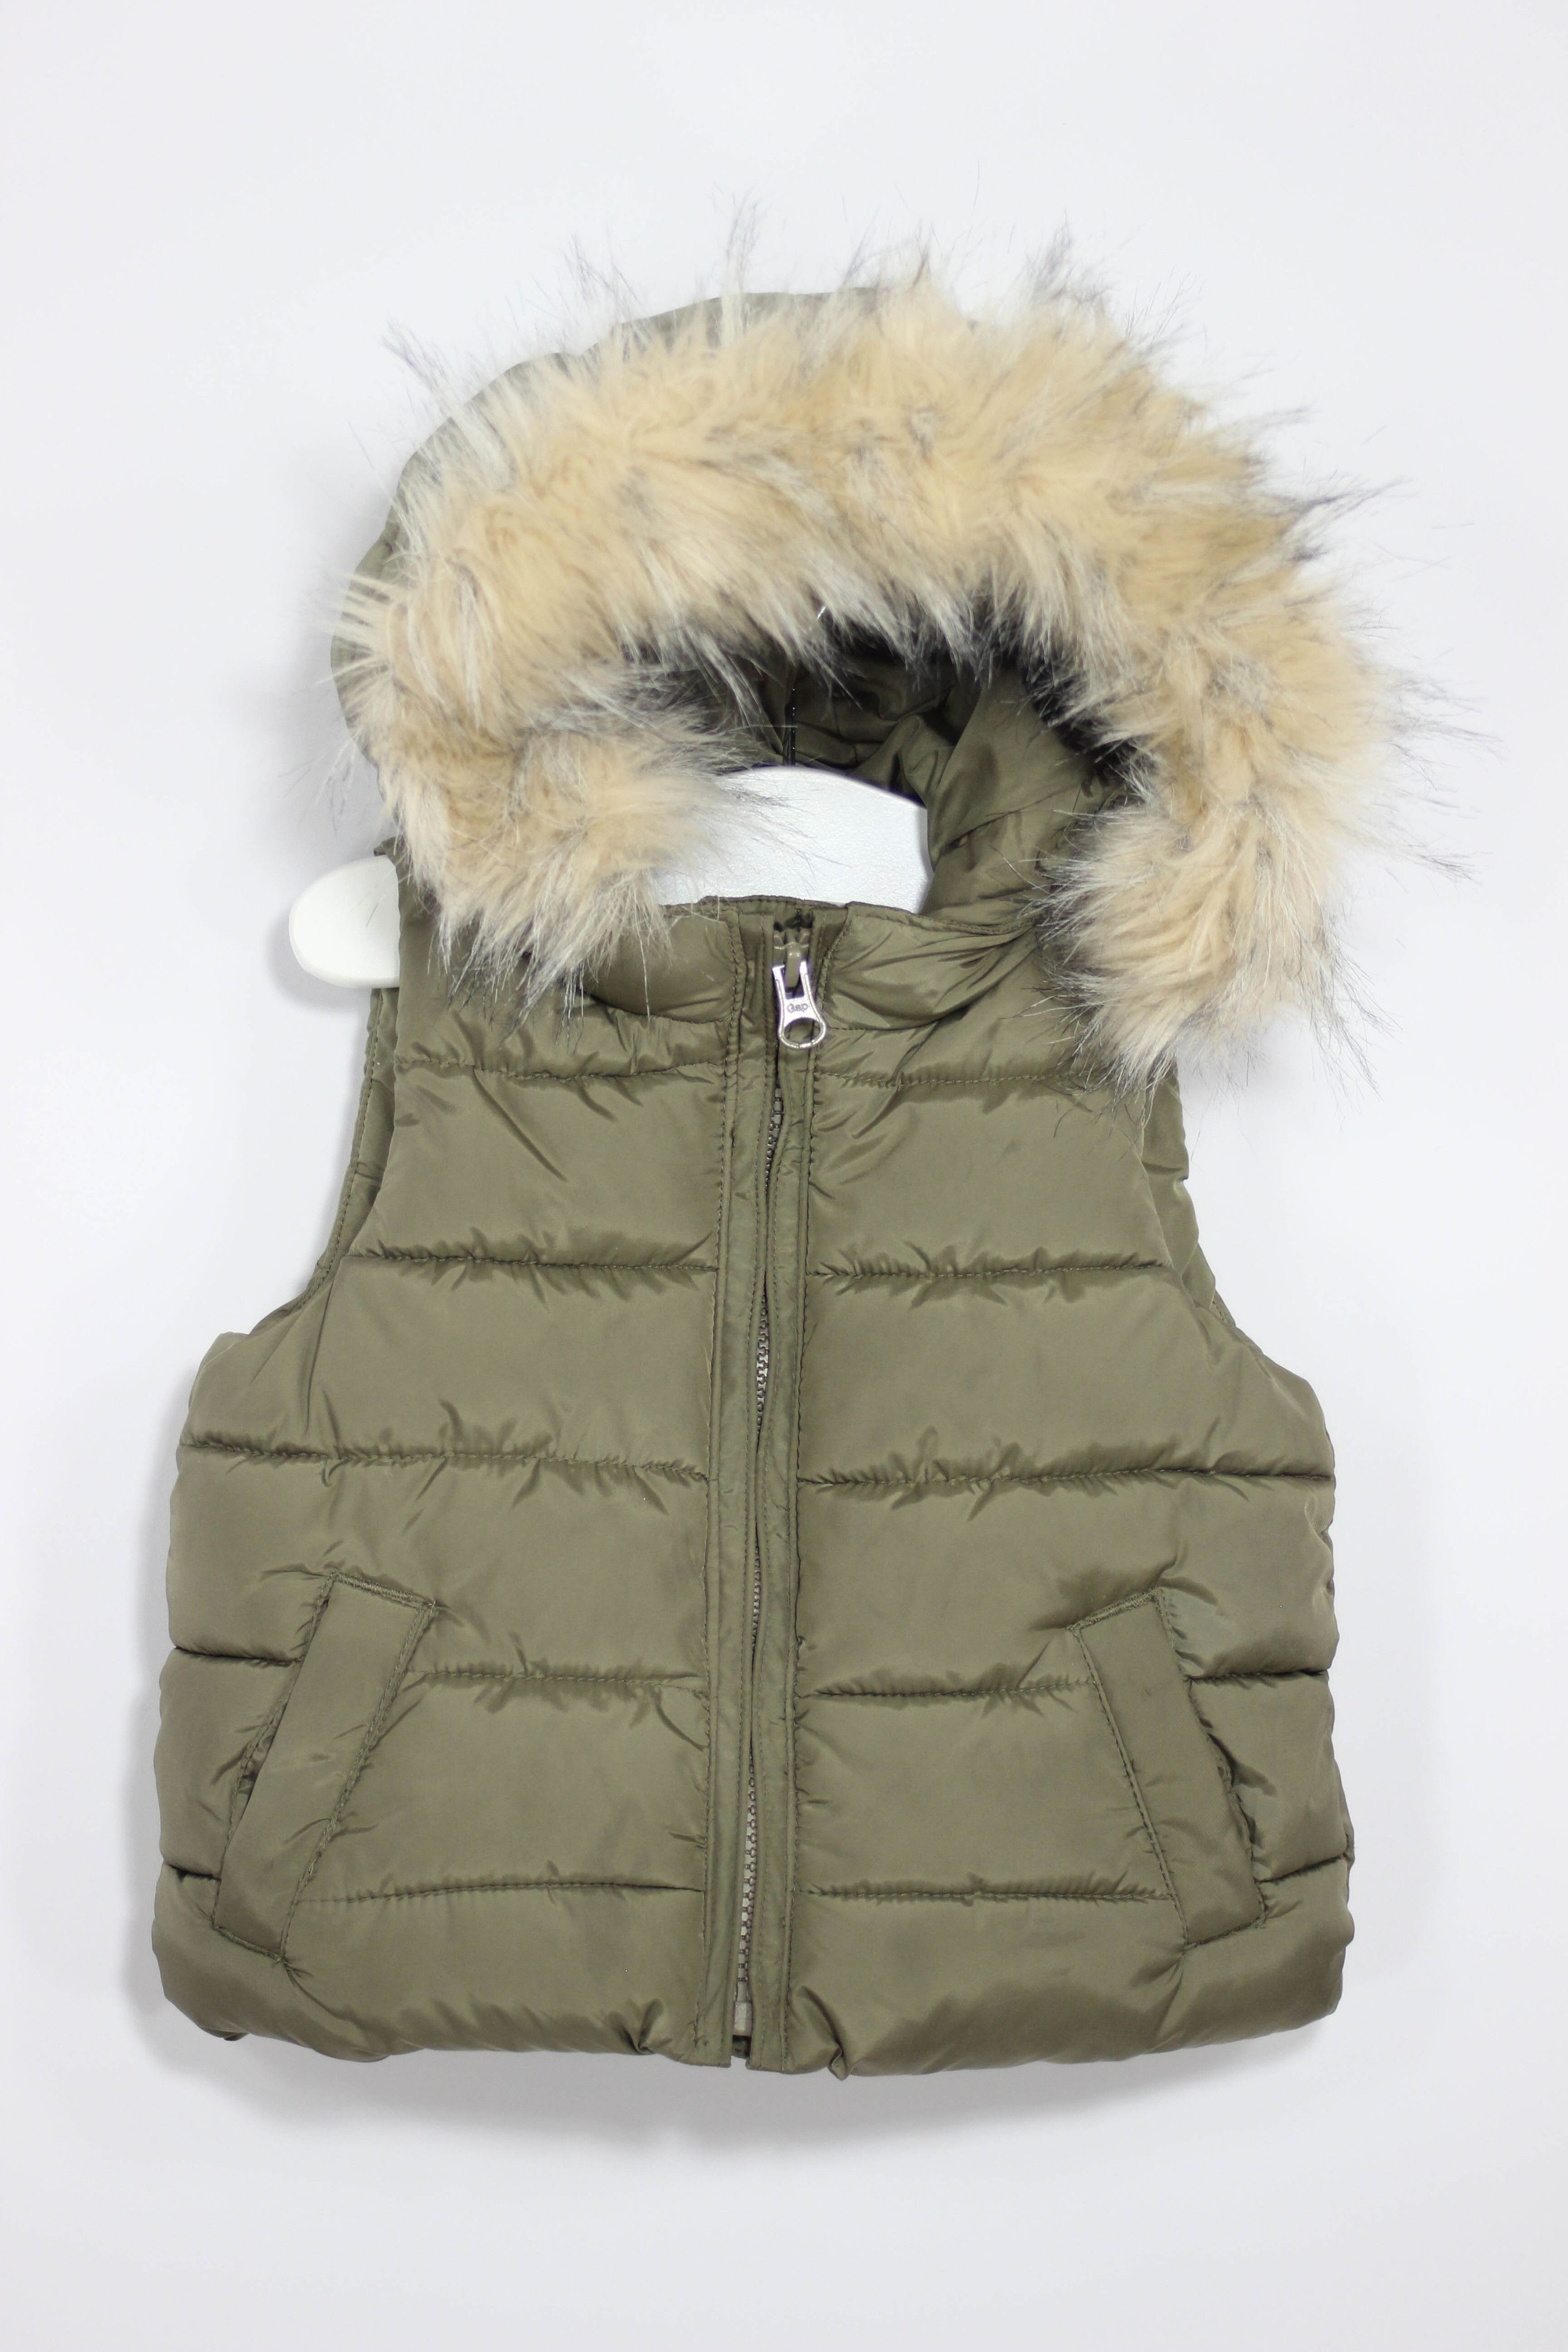 71918fb06 Baby Gap Size 12-18M Puffy Vest